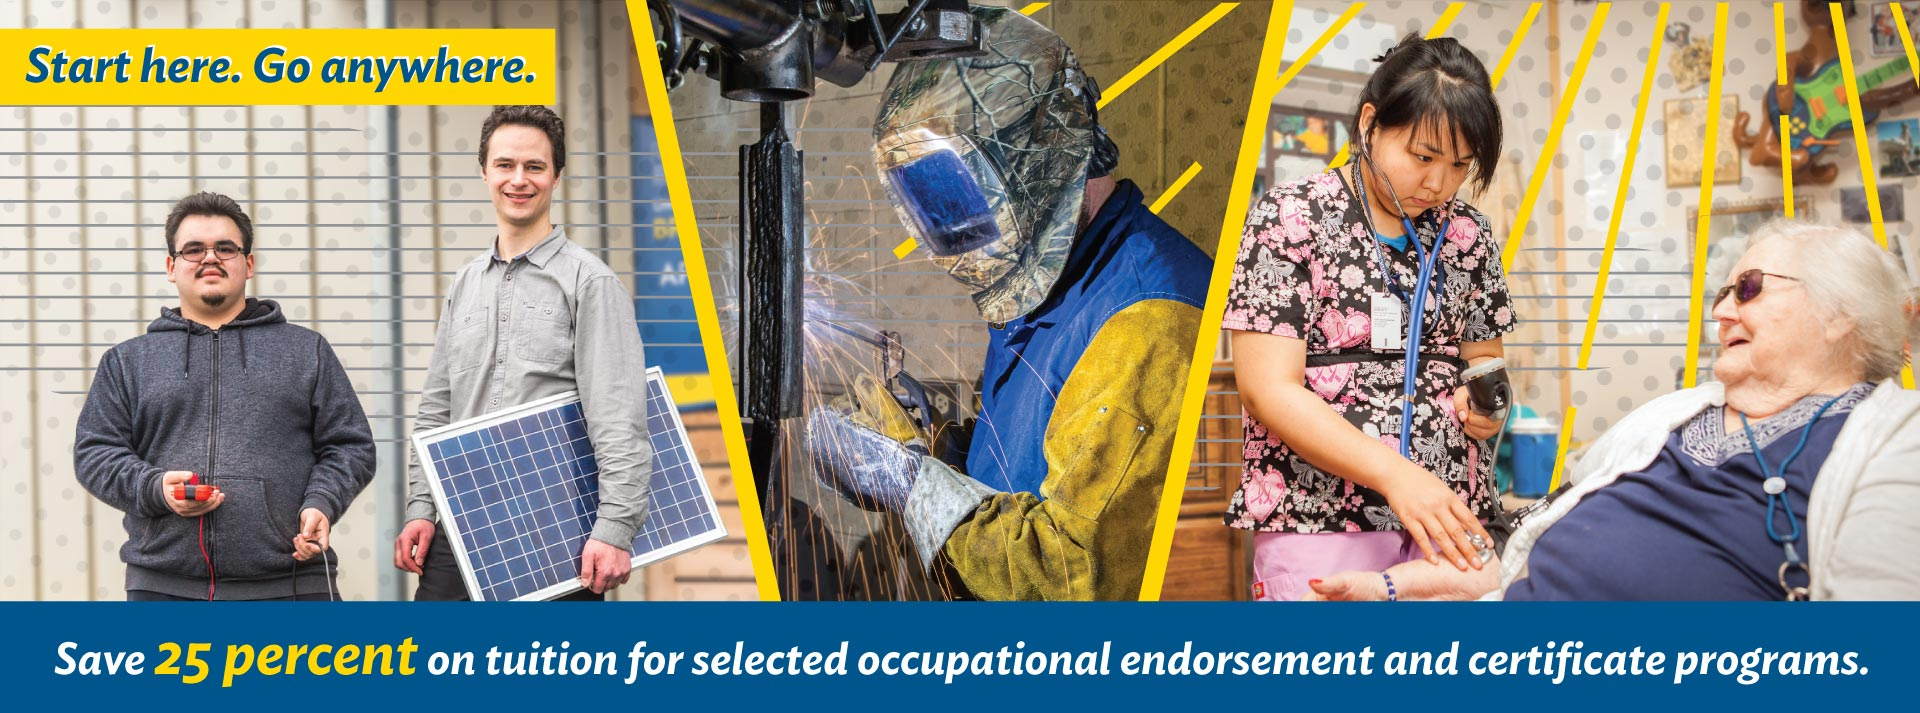 Collage of UAF students in occupational endorsement programs